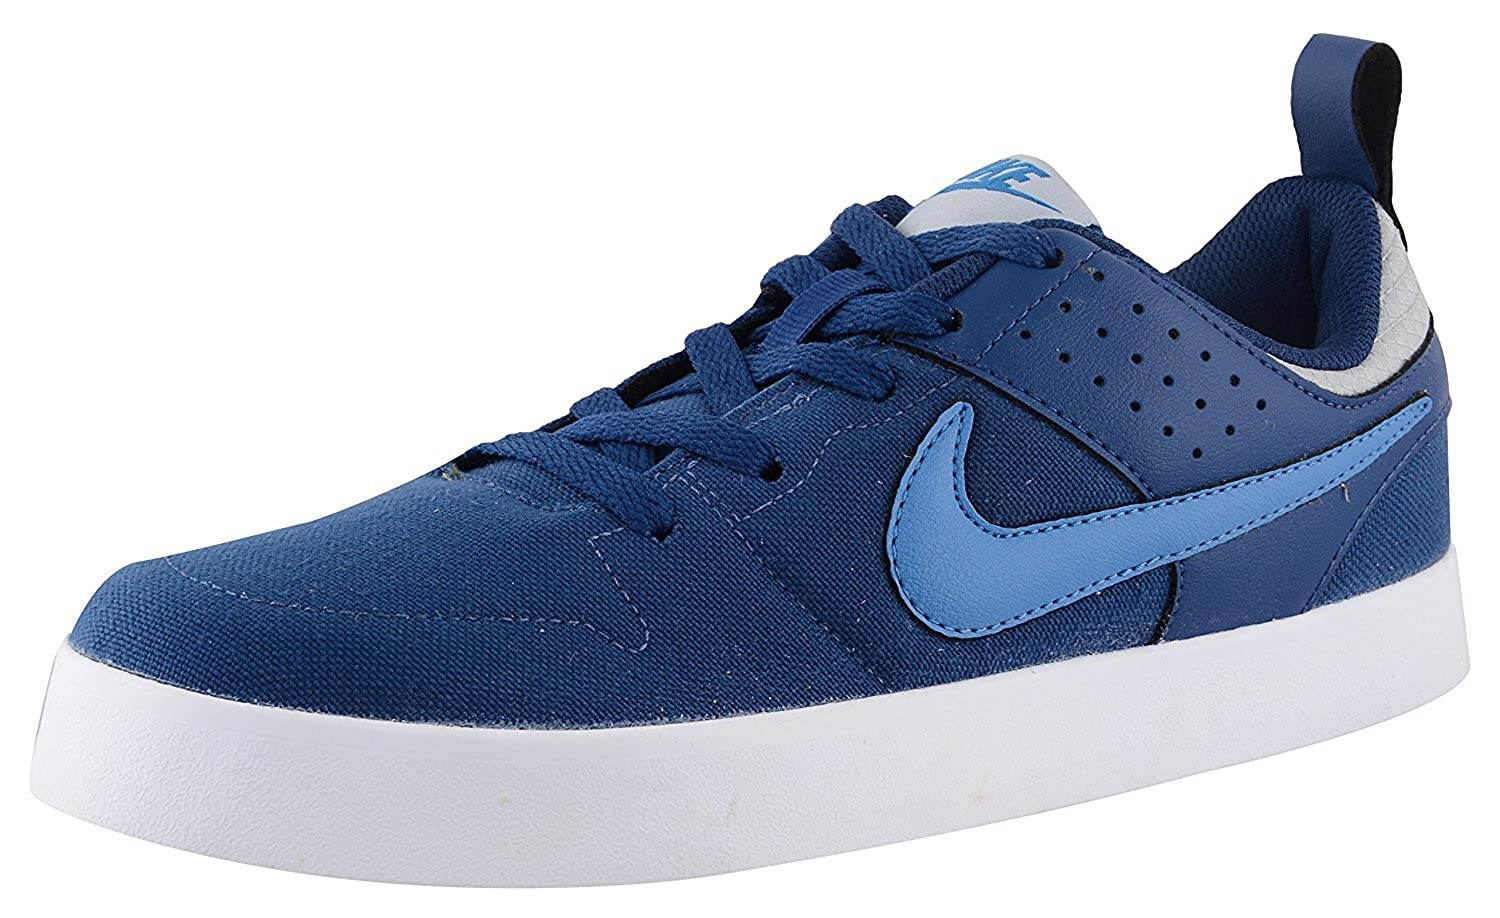 new styles 98726 a29fd Nike Men s Blue, Star Blue- Wlf Gry Casual Canvas Sneaker -11  Buy Online  at Low Prices in India - Amazon.in